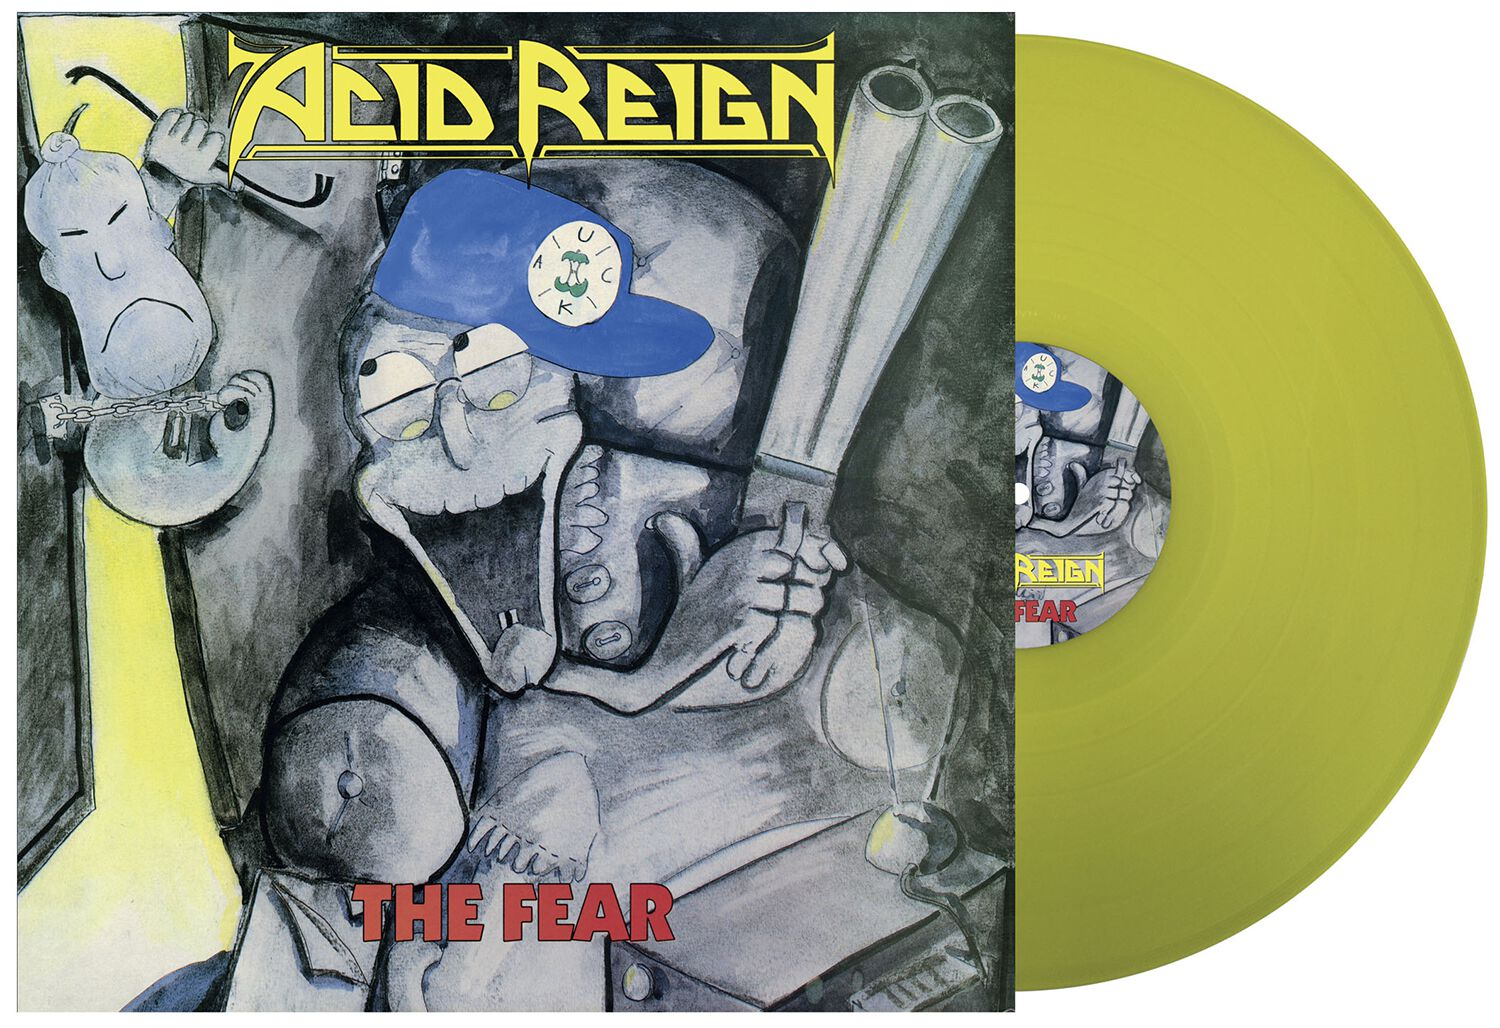 Image of Acid Reign The fear LP gelb